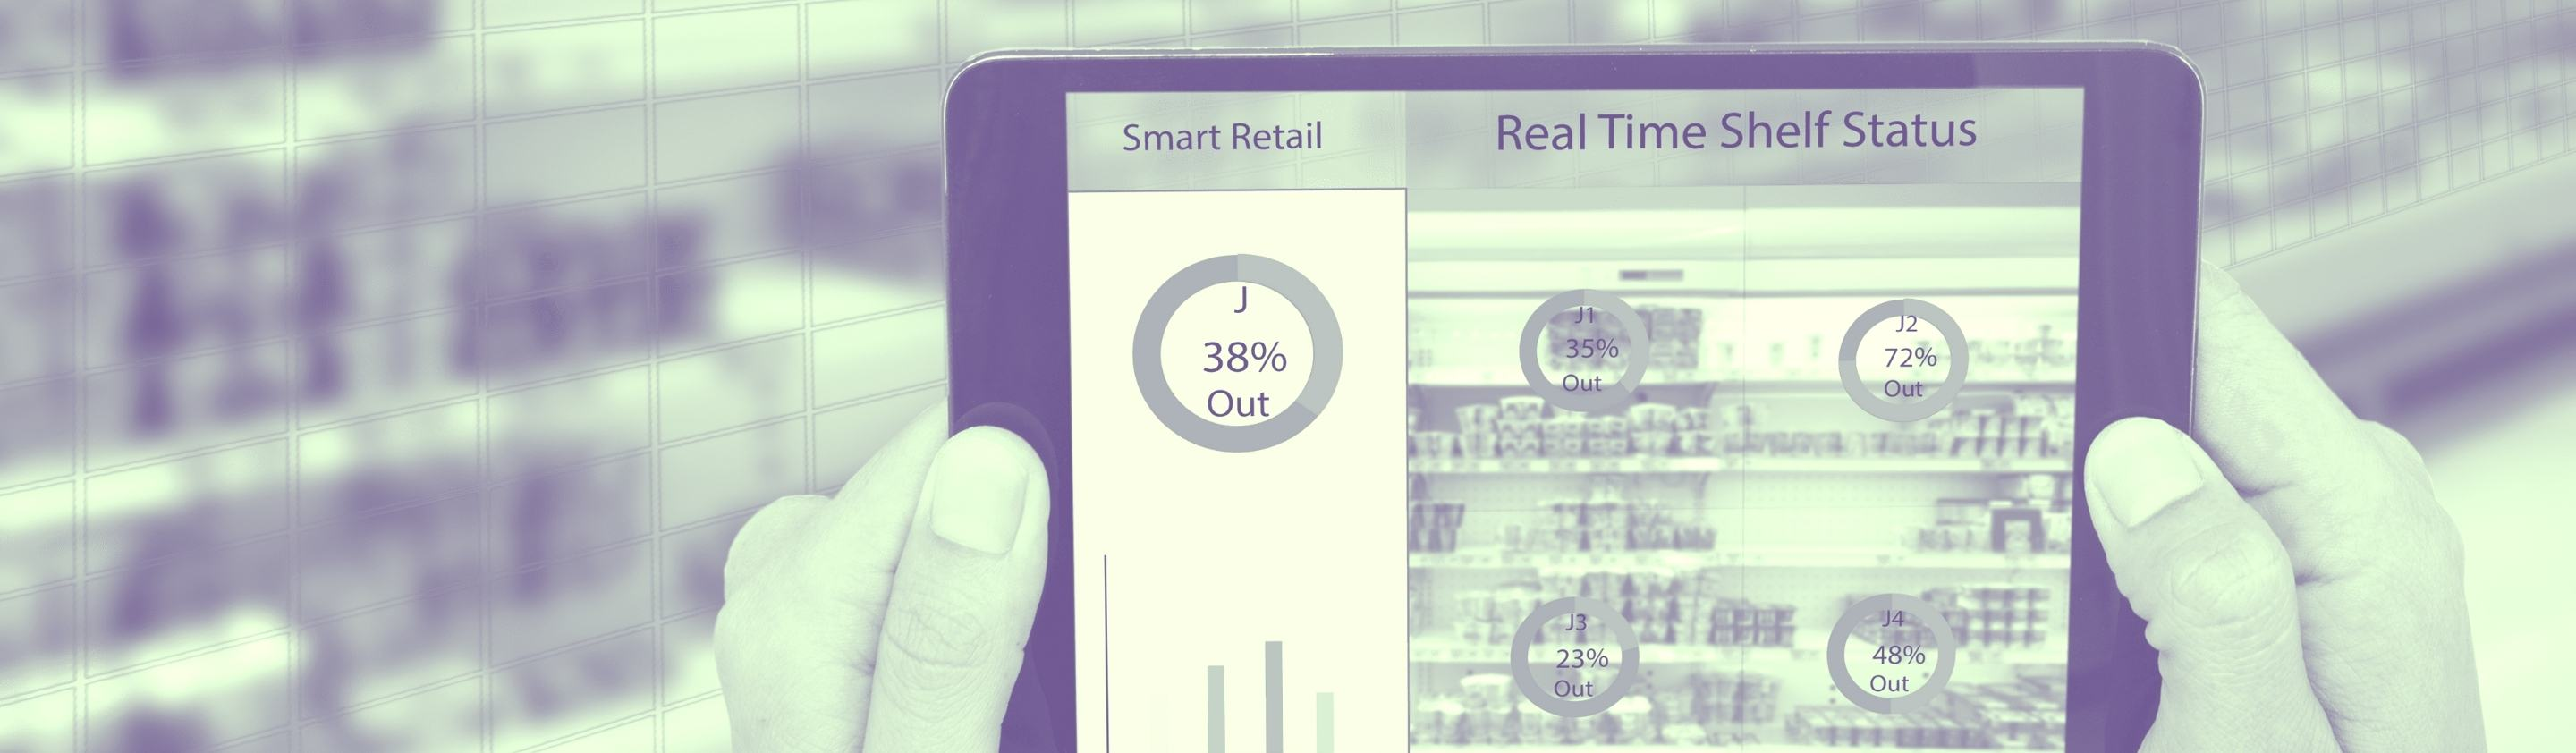 Image recognition for retail execution